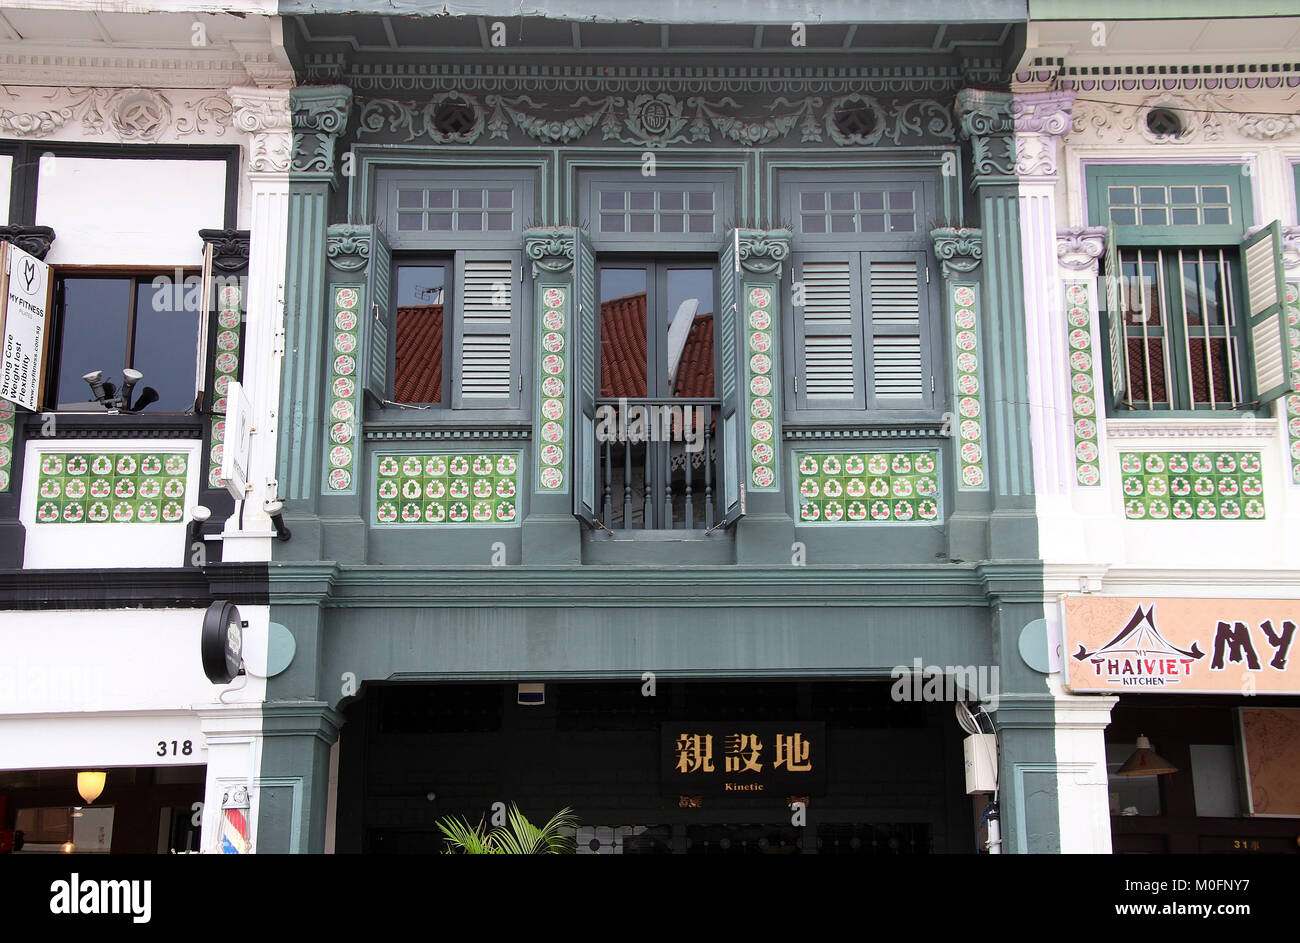 Joo Chiat Shophouse in Singapore - Stock Image